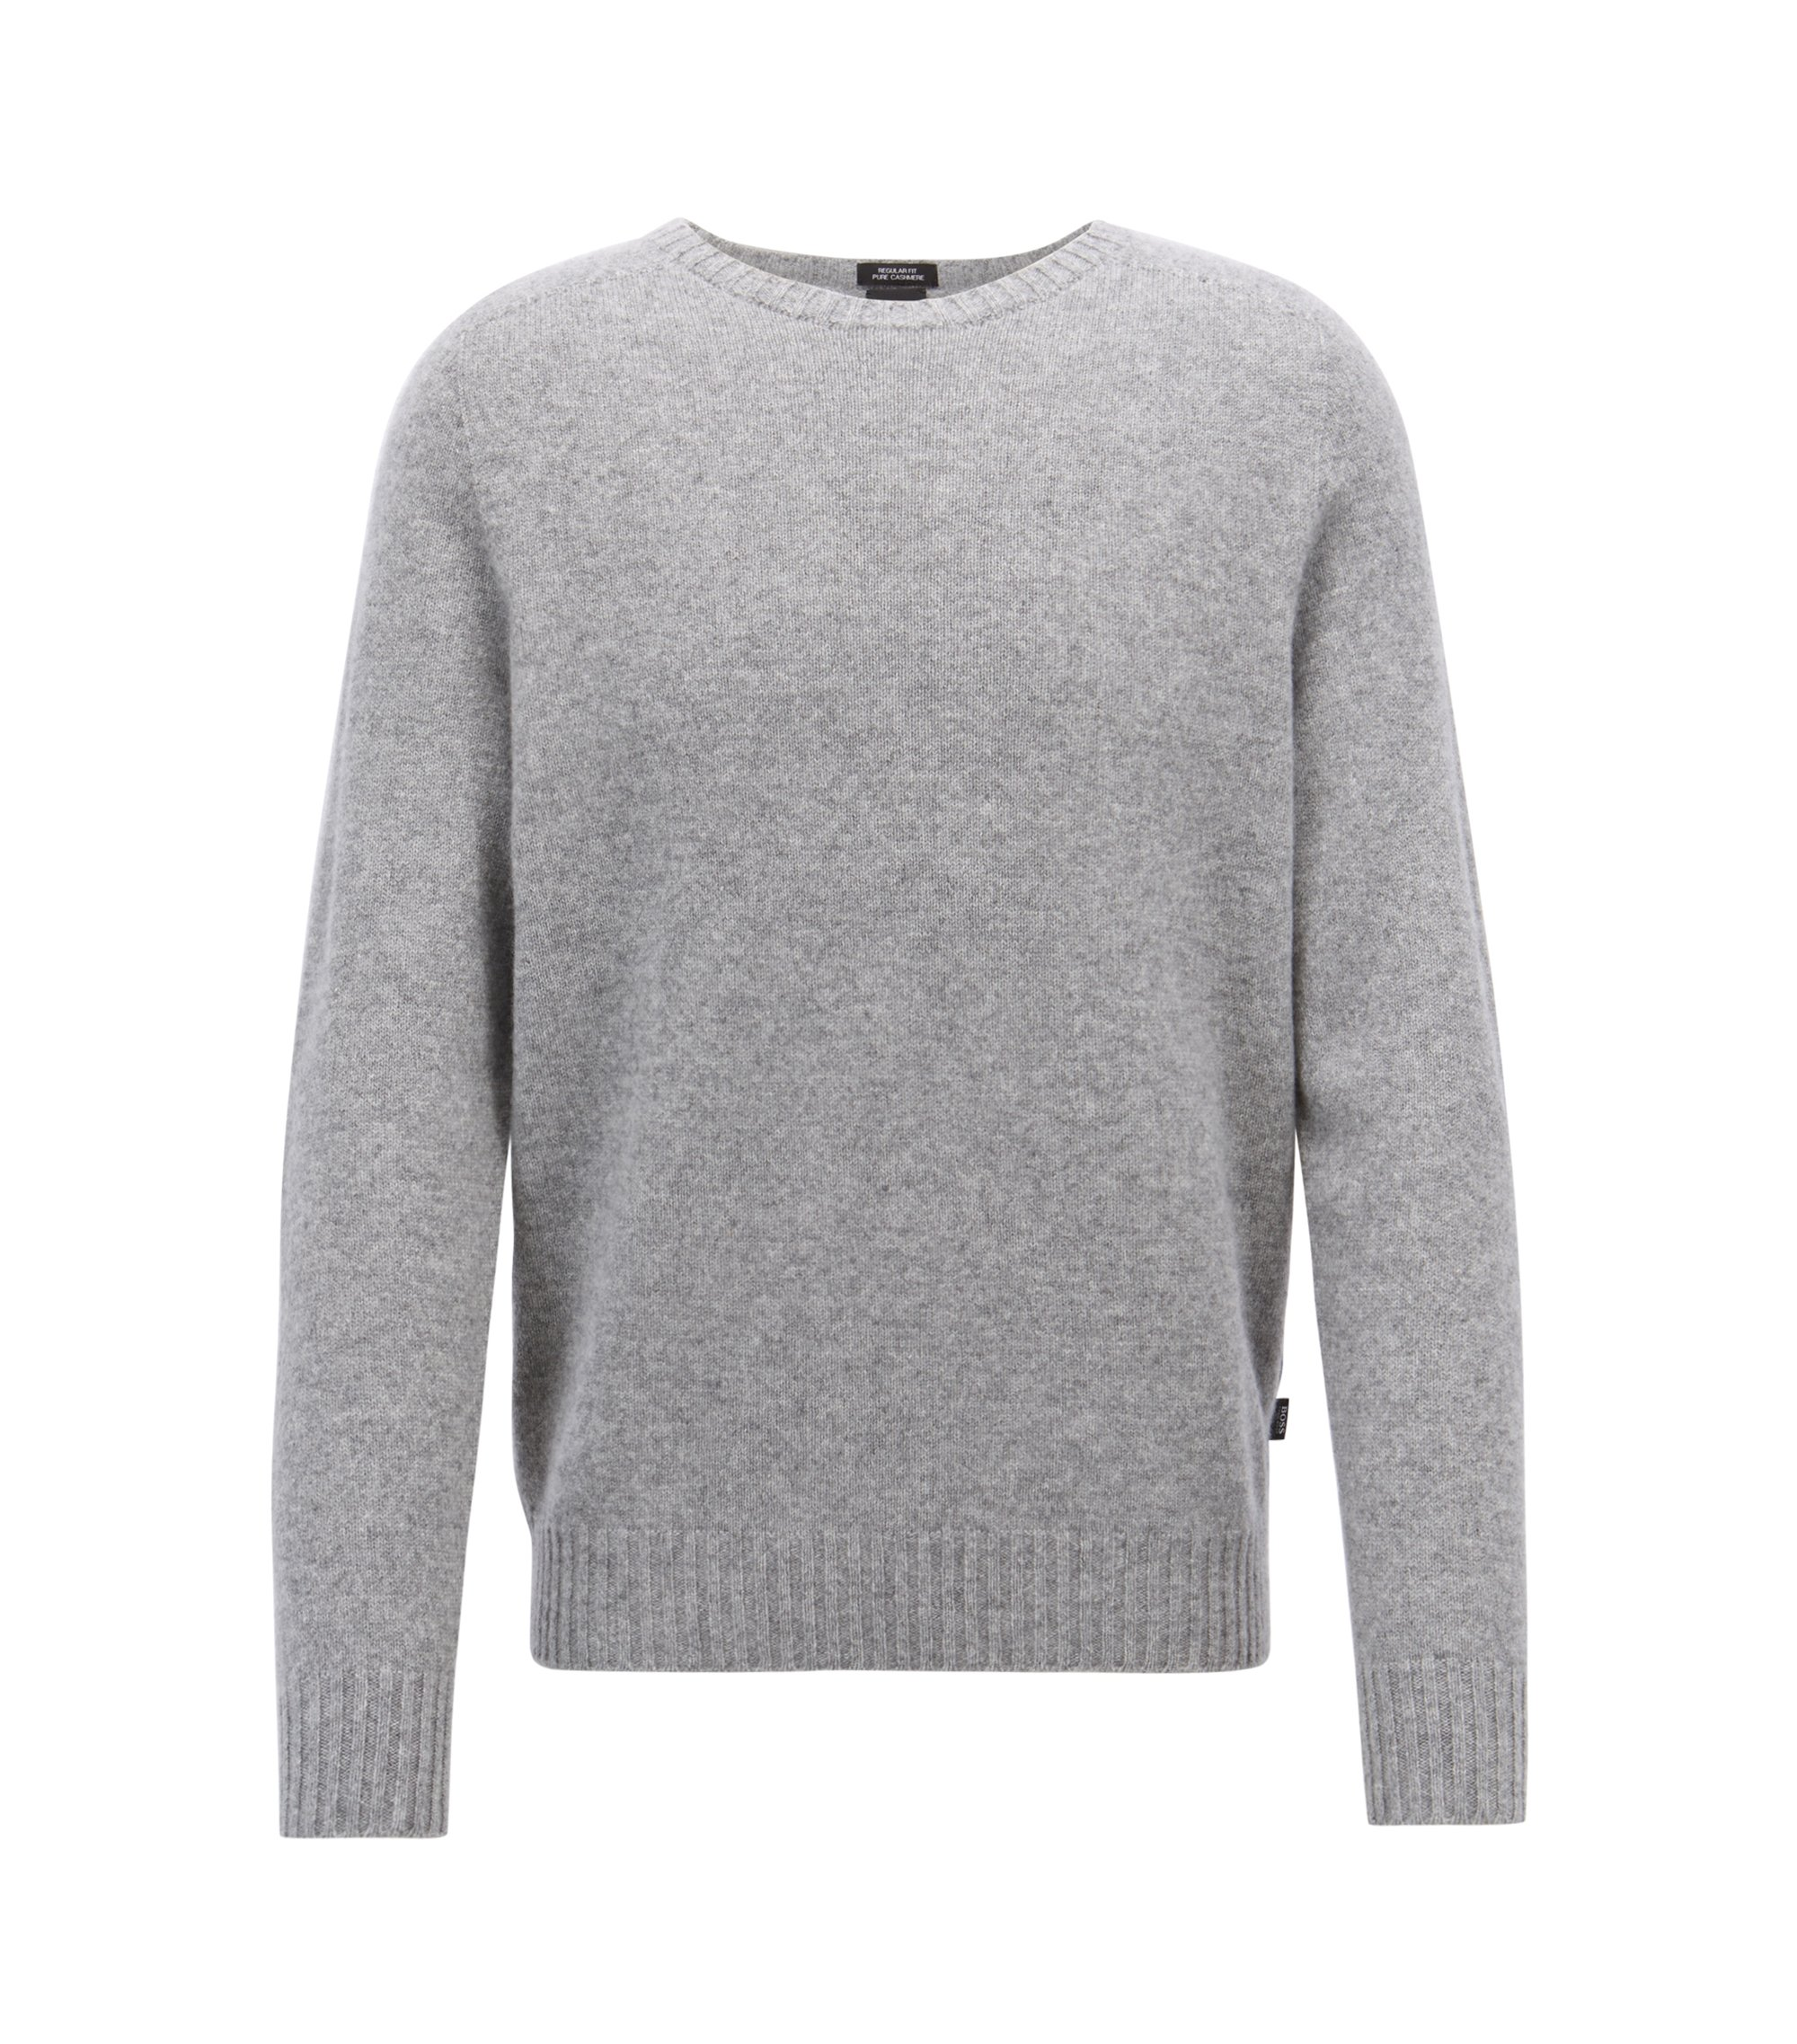 Cashmere sweater with seam-free design, Silver